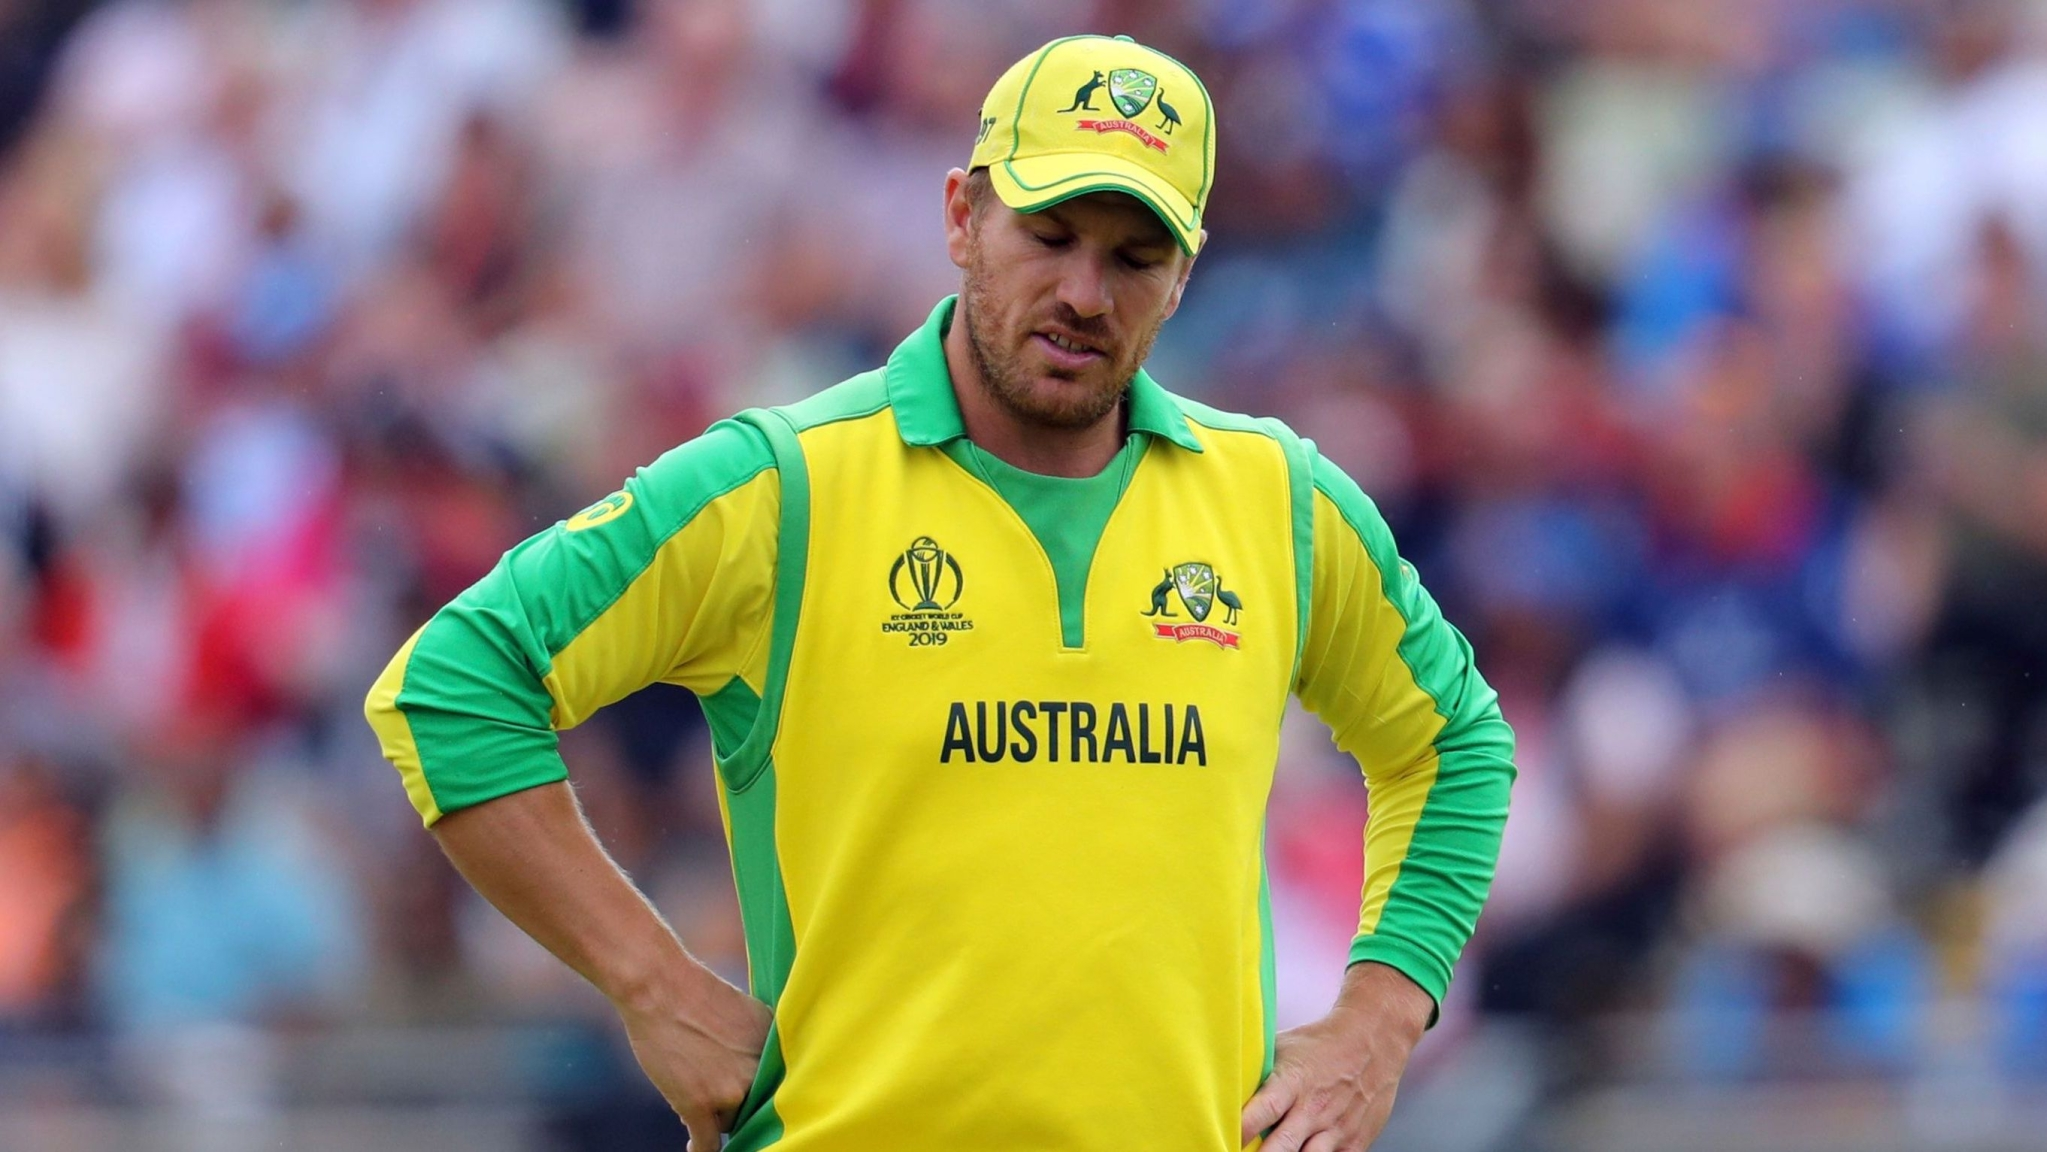 'Totally Outplayed': Aus Captain Finch Says World Cup Exit Hurts